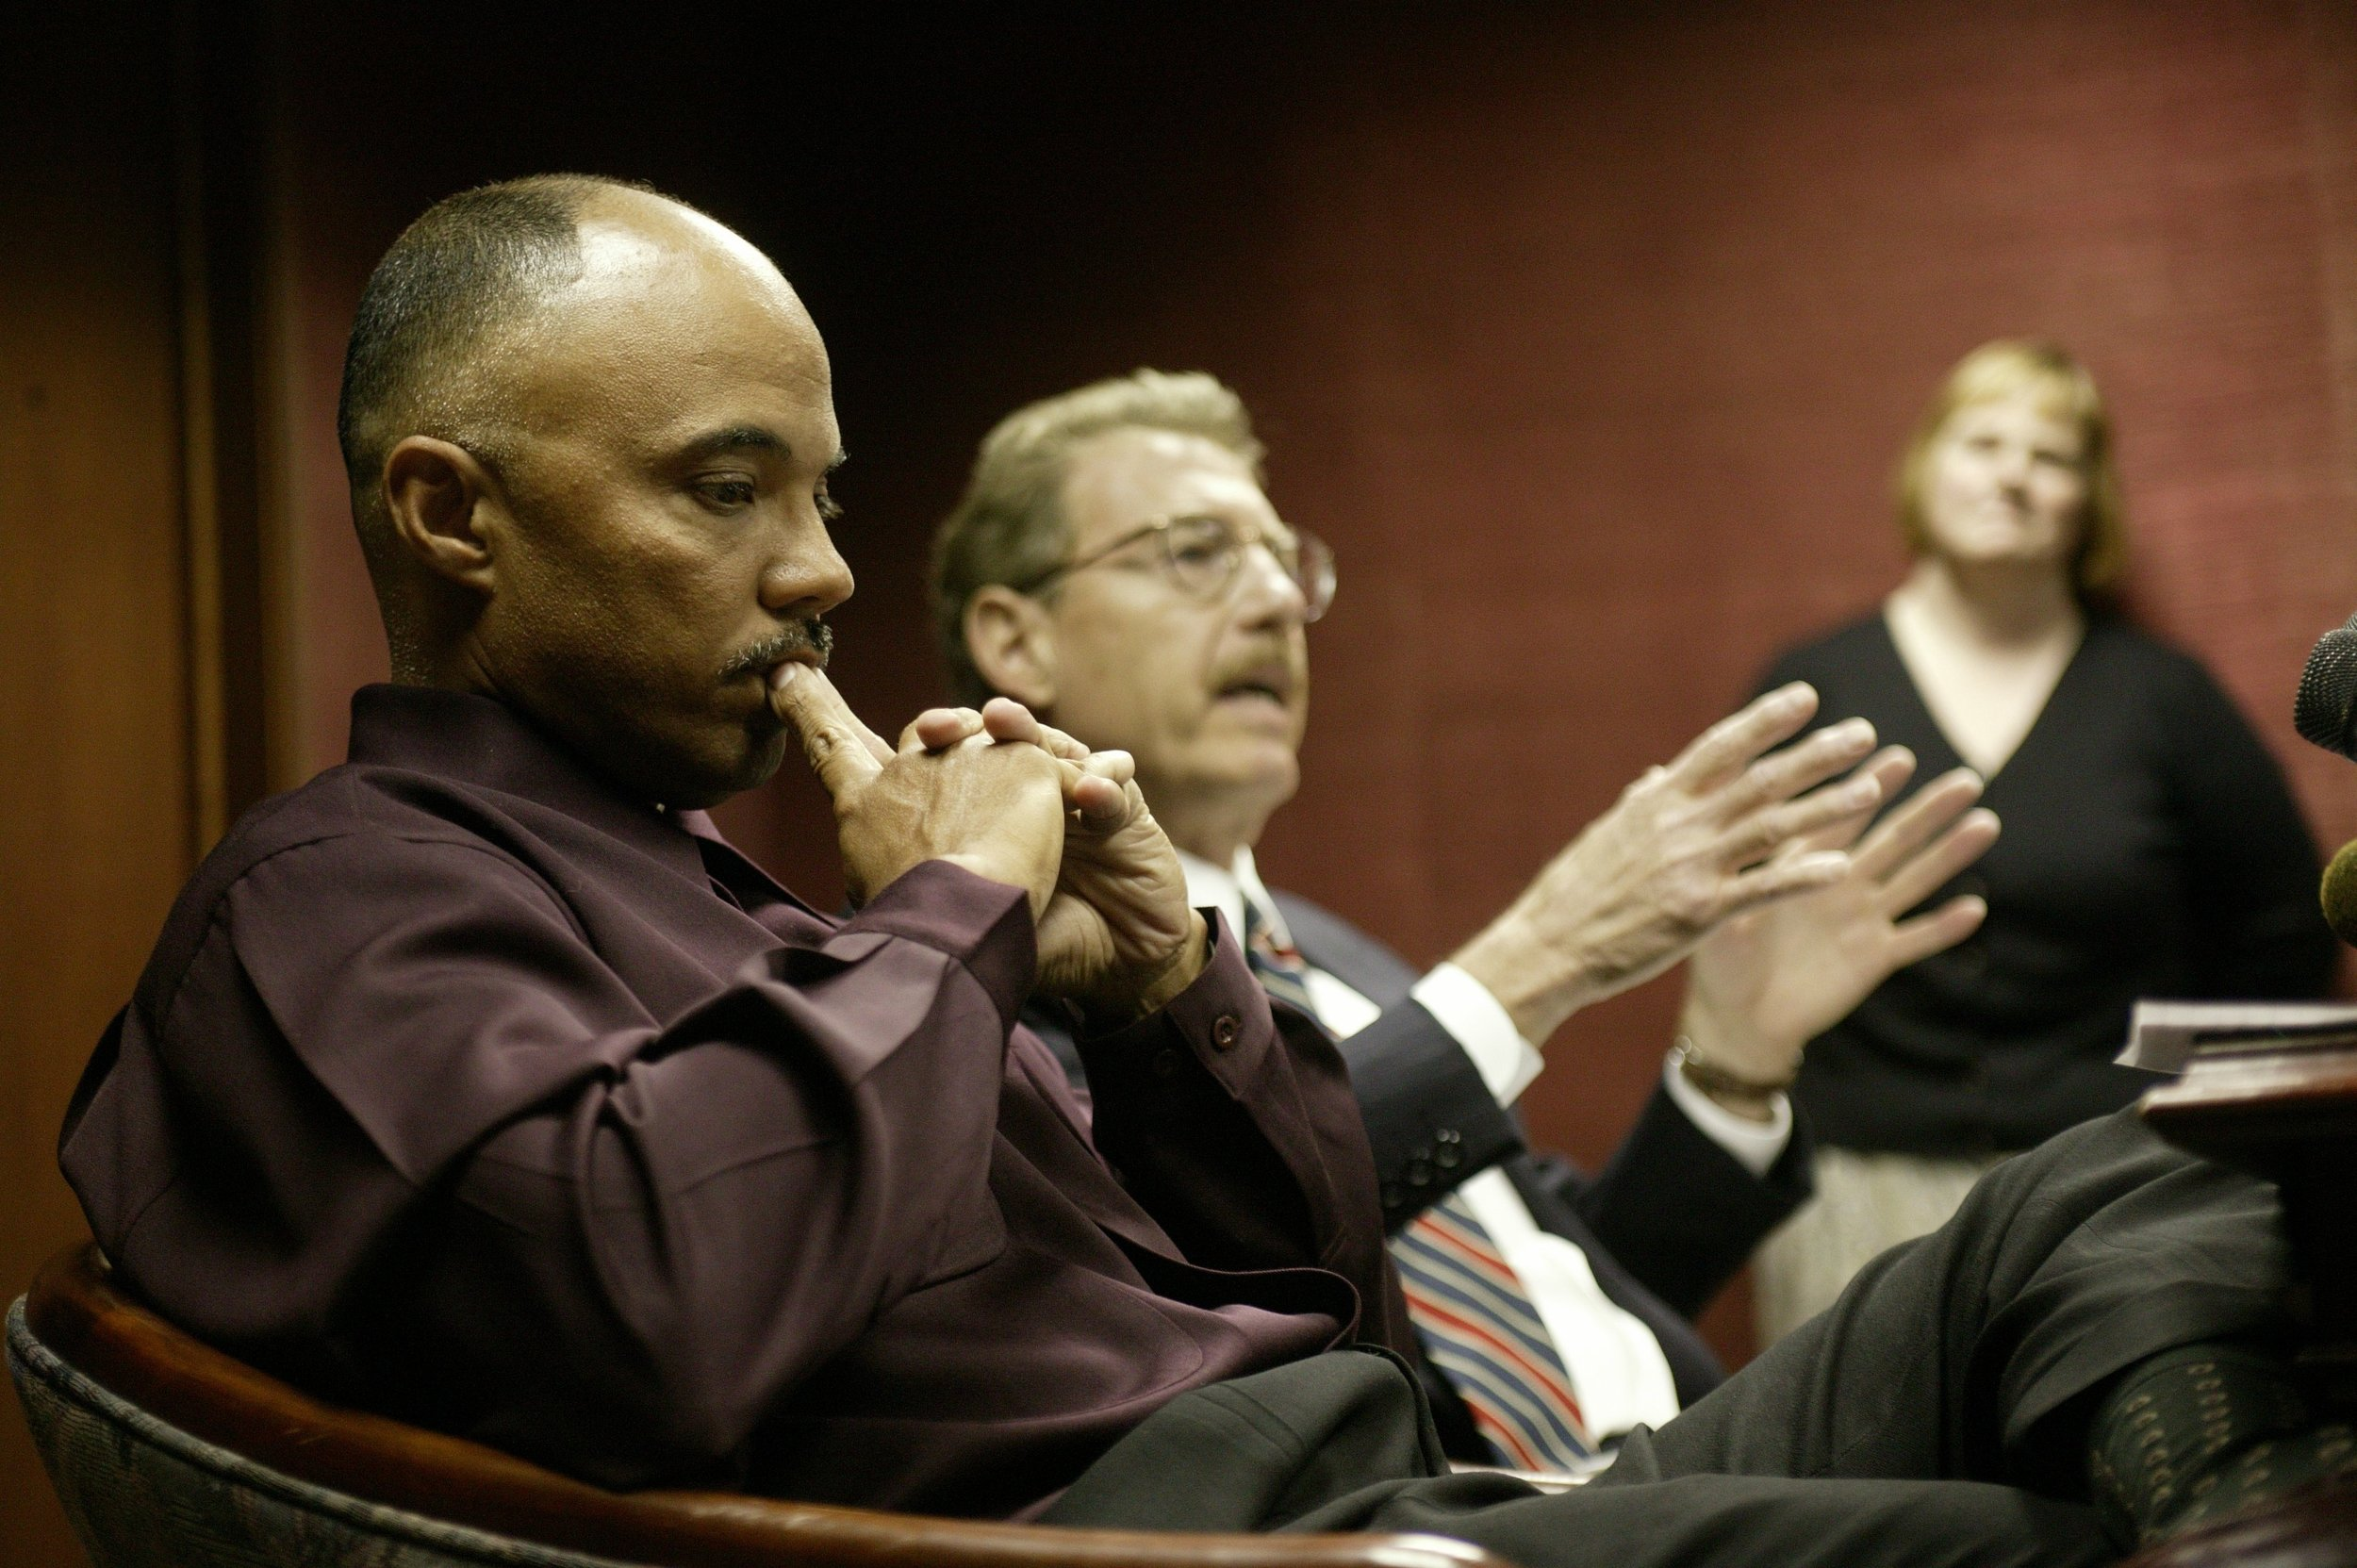 Former deputy police chief Gary Brown, left, during a press conference with his attorney. Mayor Kwame Kilpatrick fired Brown during a police investigation into rumors about a party at the Manoogian Mansion.  Courtesy of the Detroit Free Press.